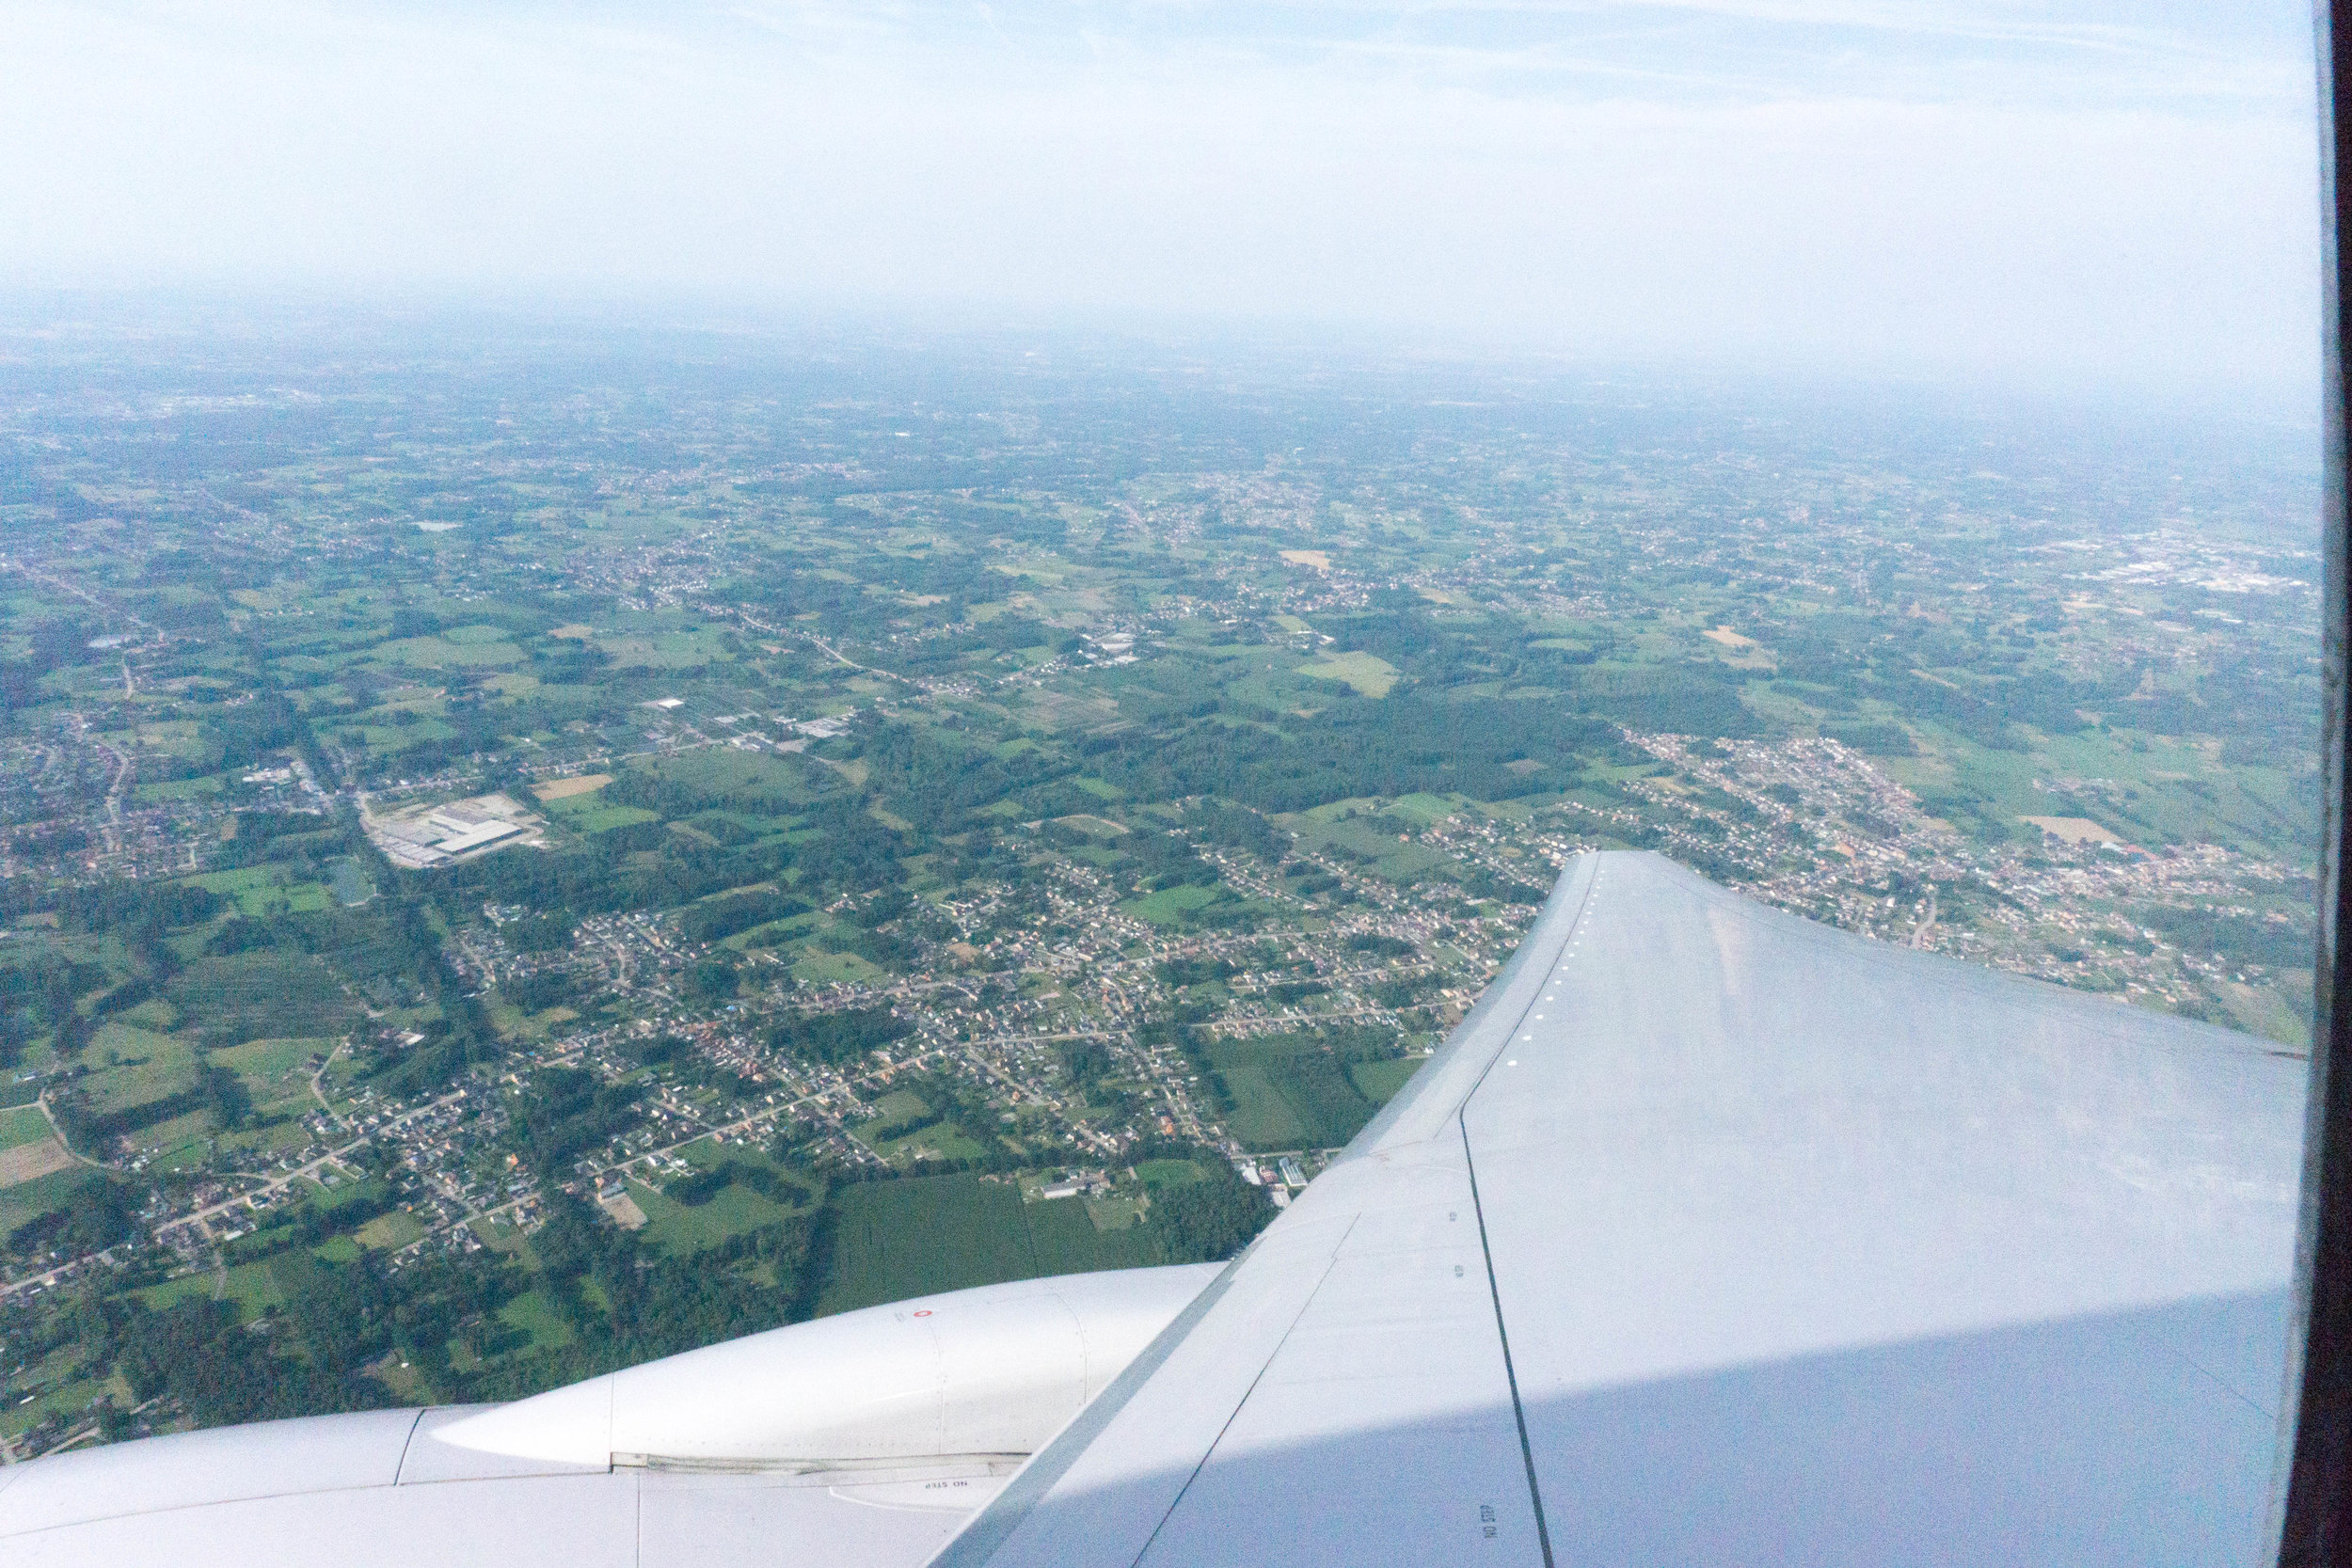 Descent into Brussels